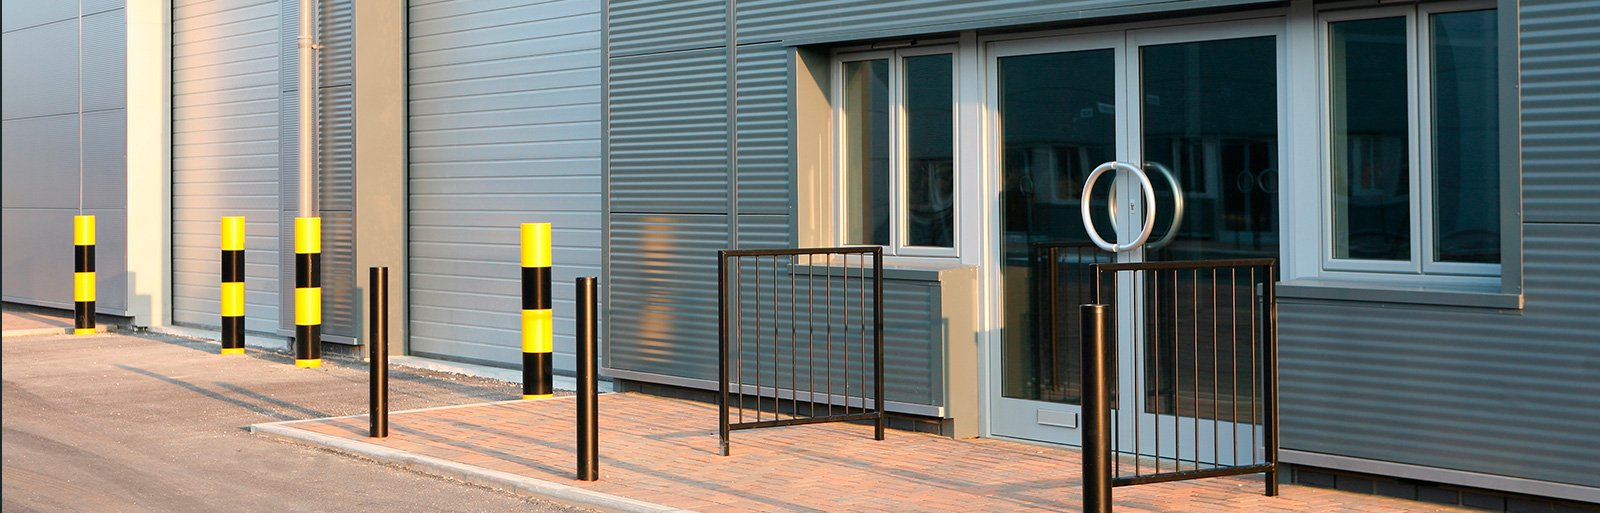 Security Shutters | Commercial